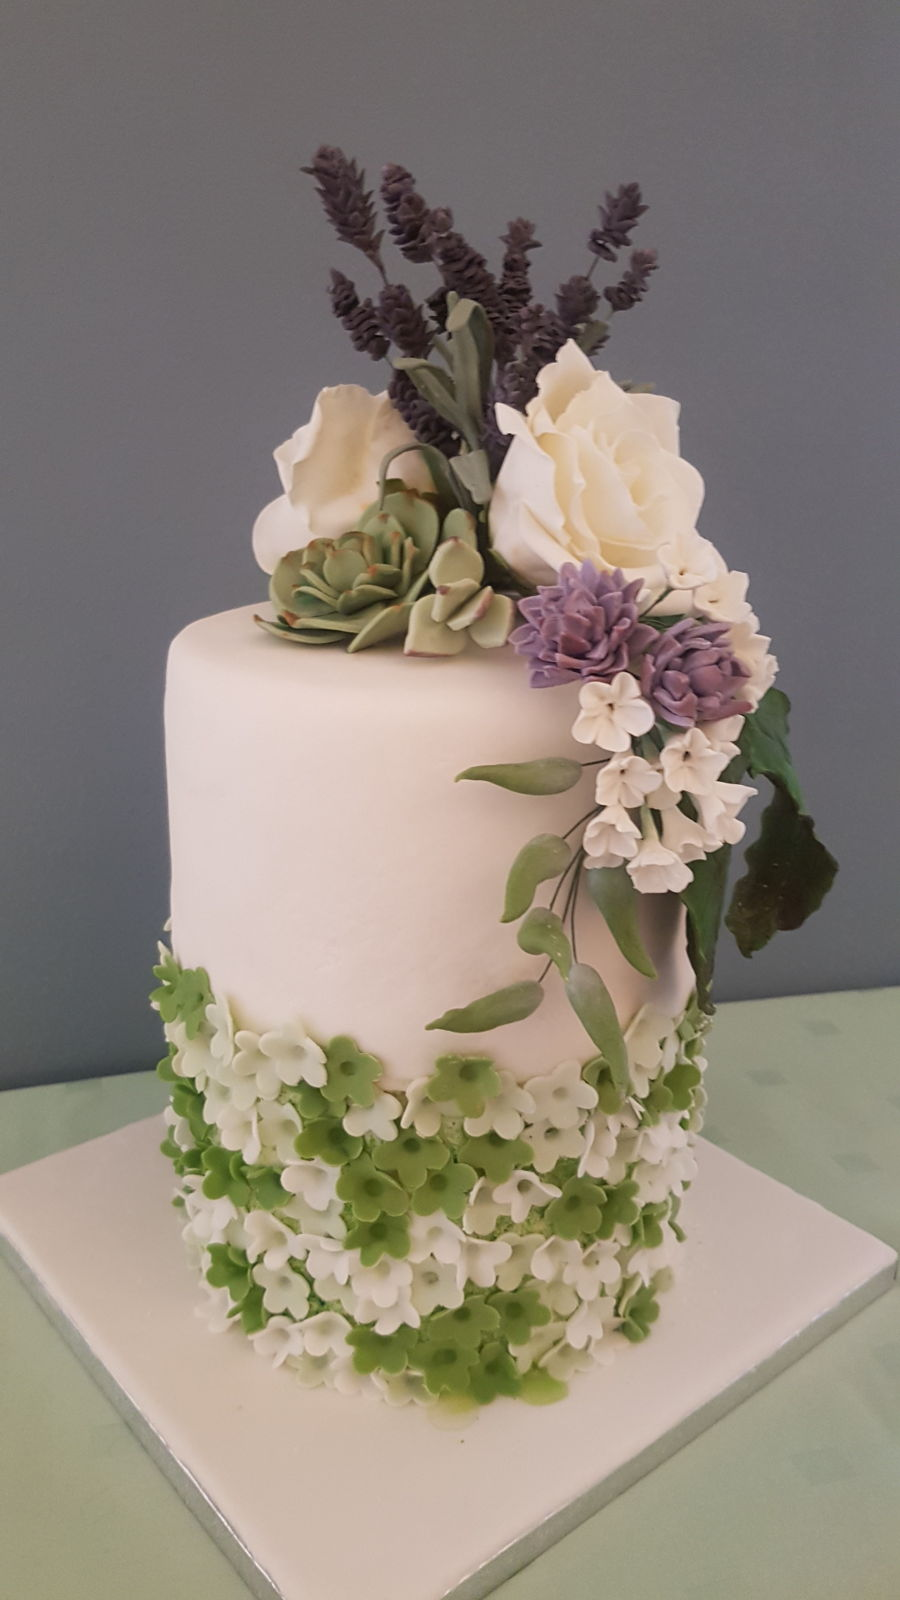 Cake With Flowers on Cake Central